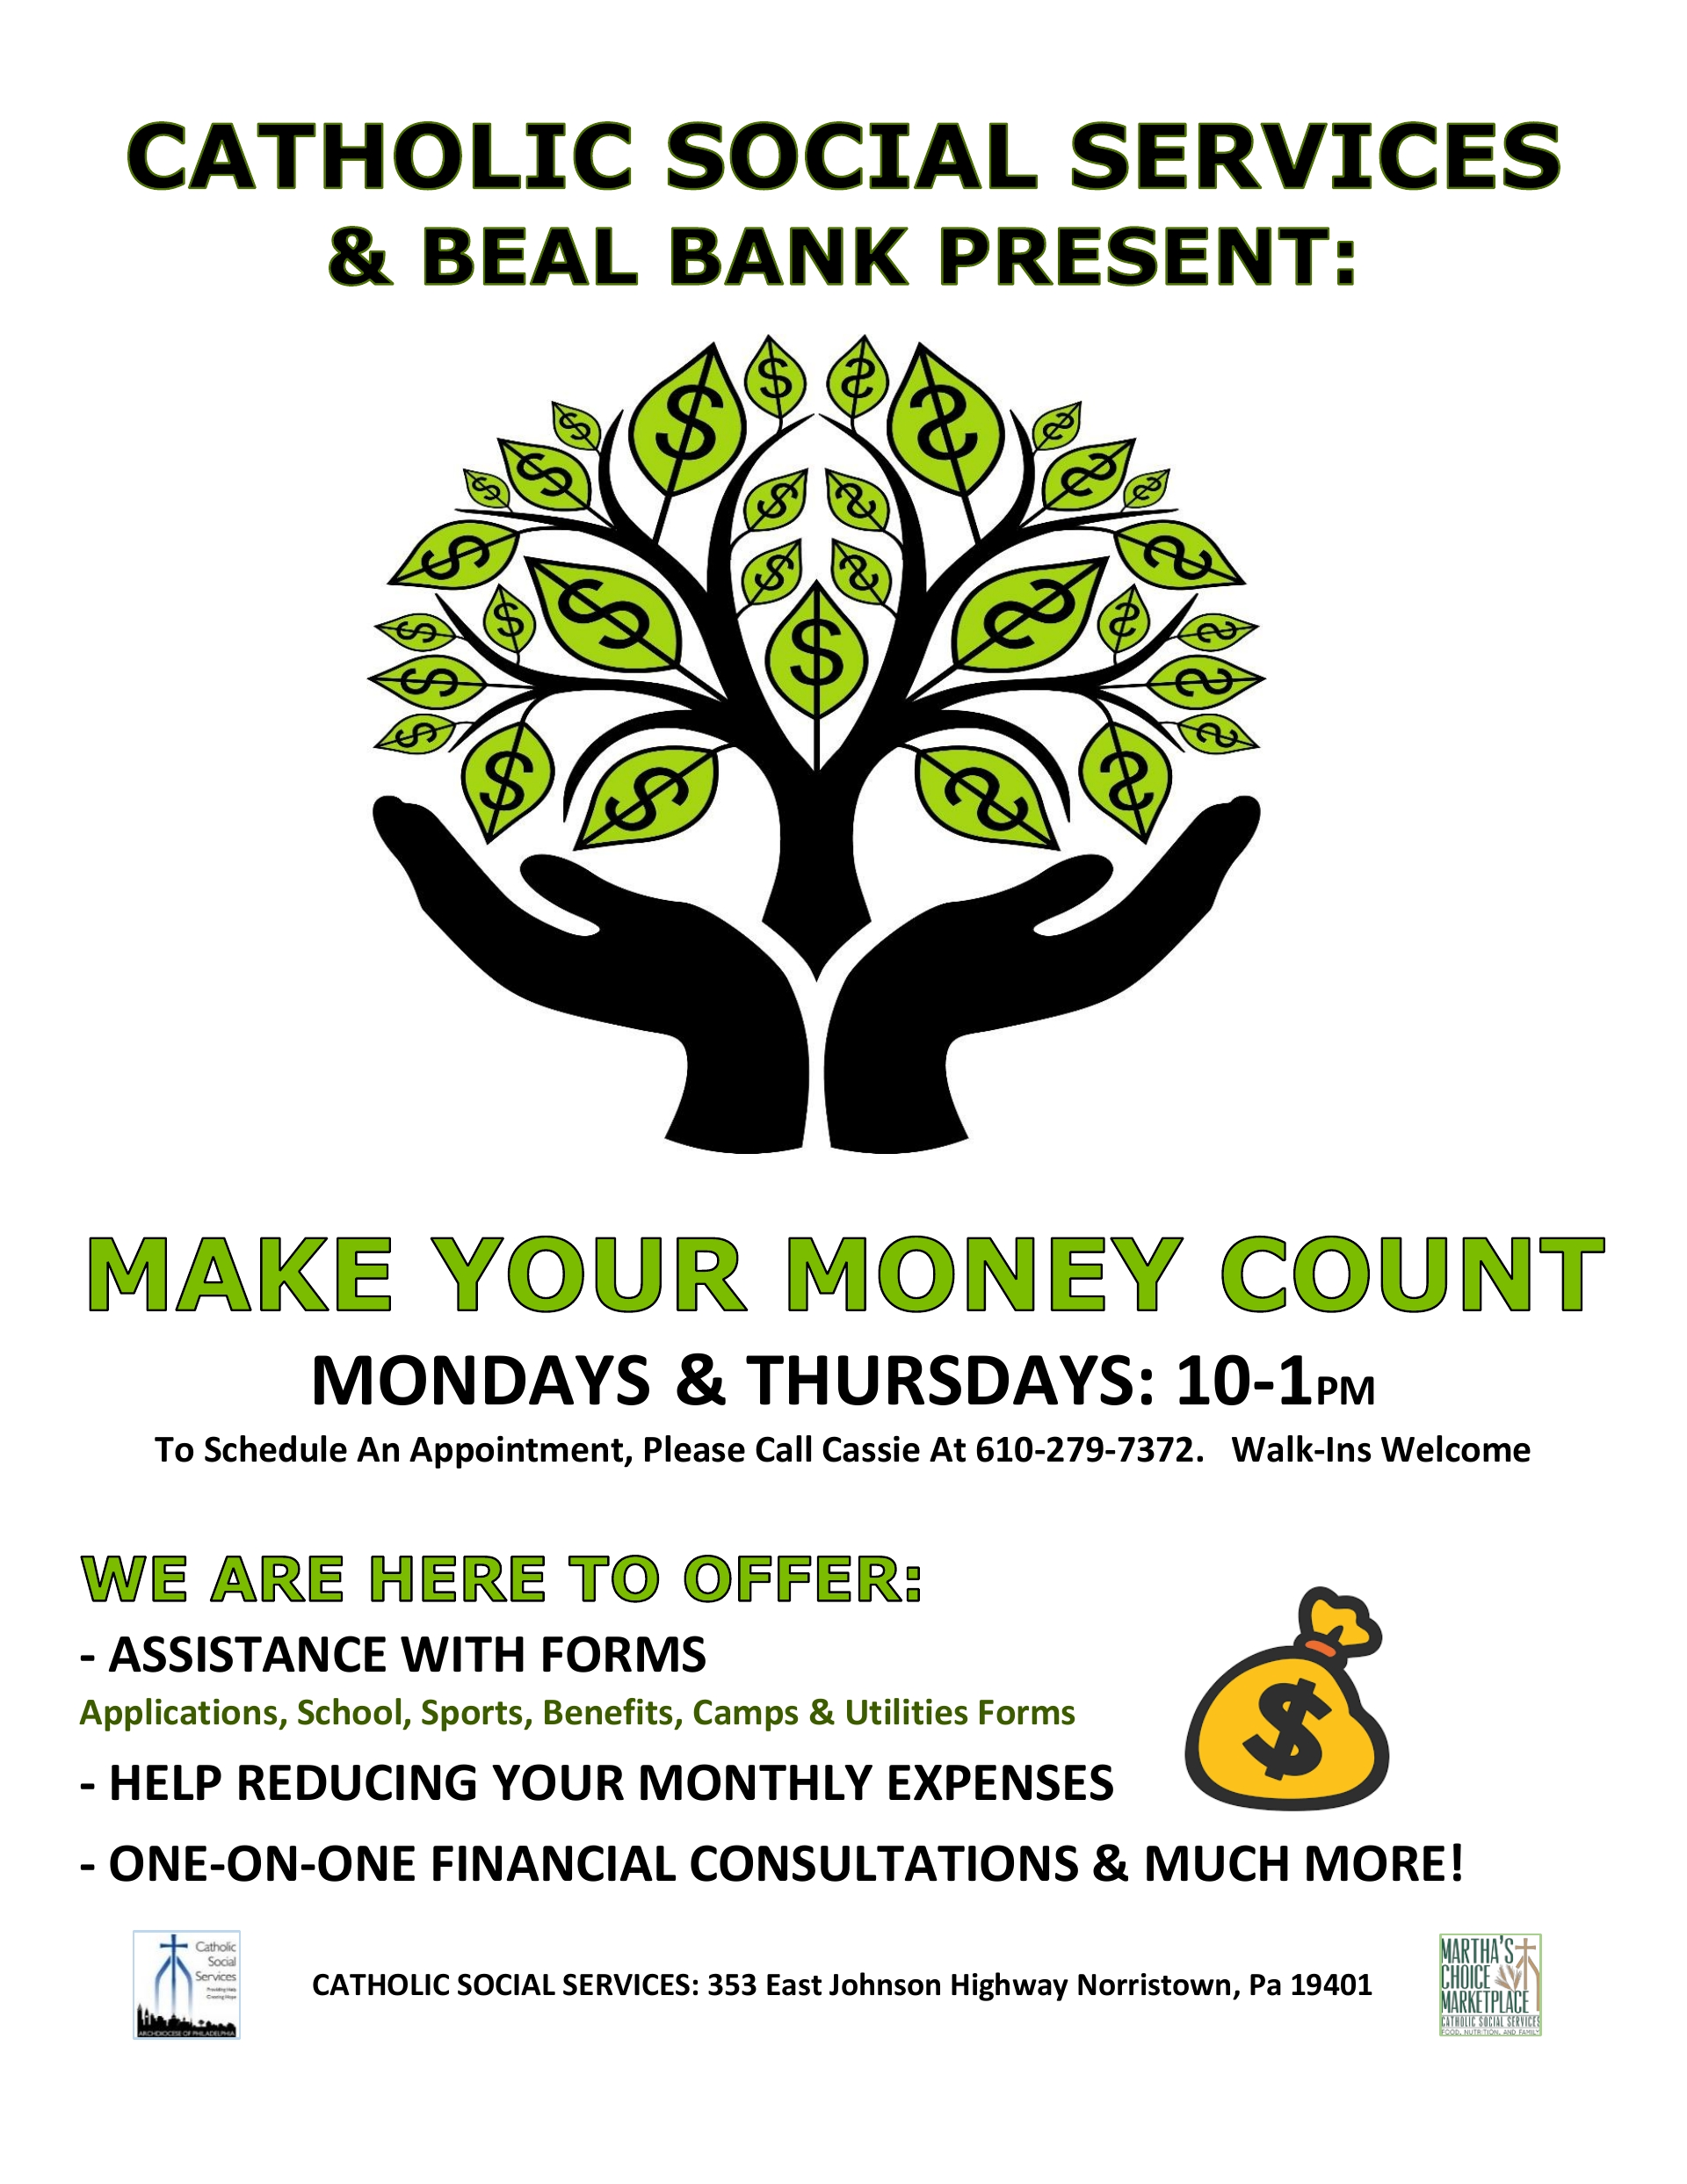 MAKE YOUR MONEY COUNT Financial Assistance Montgomery County  English and Espanol Flyers/Information